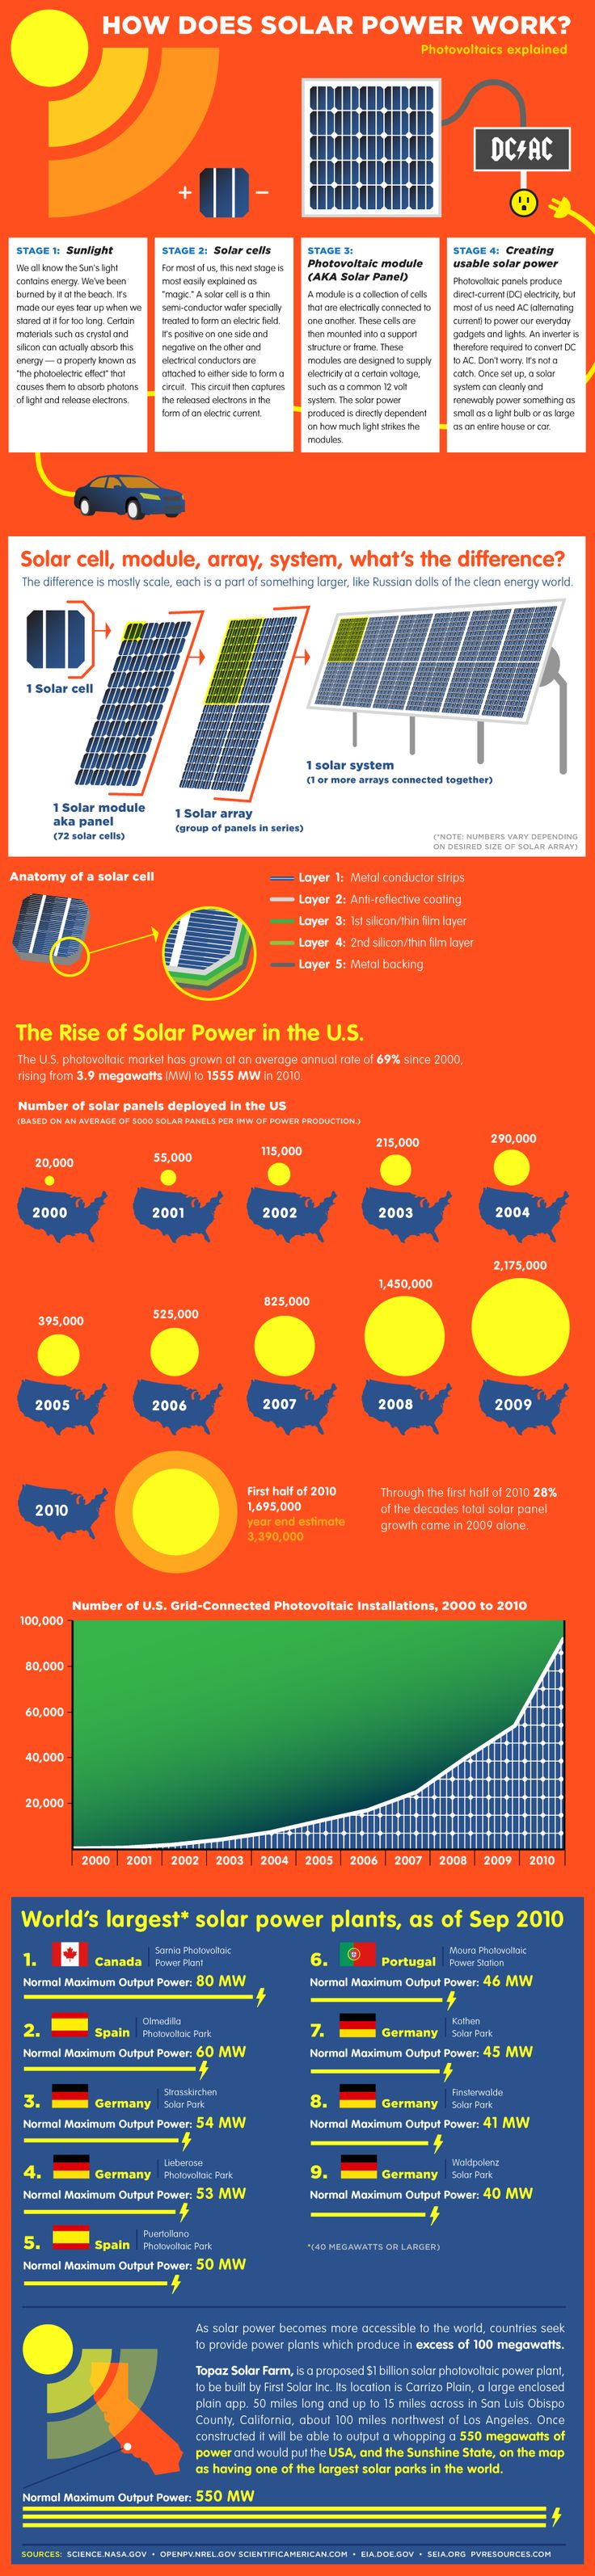 We all know that the sun's light contains energy. Here shows how does solar power work starting from stage 1 up to Creating usable solar power. Check